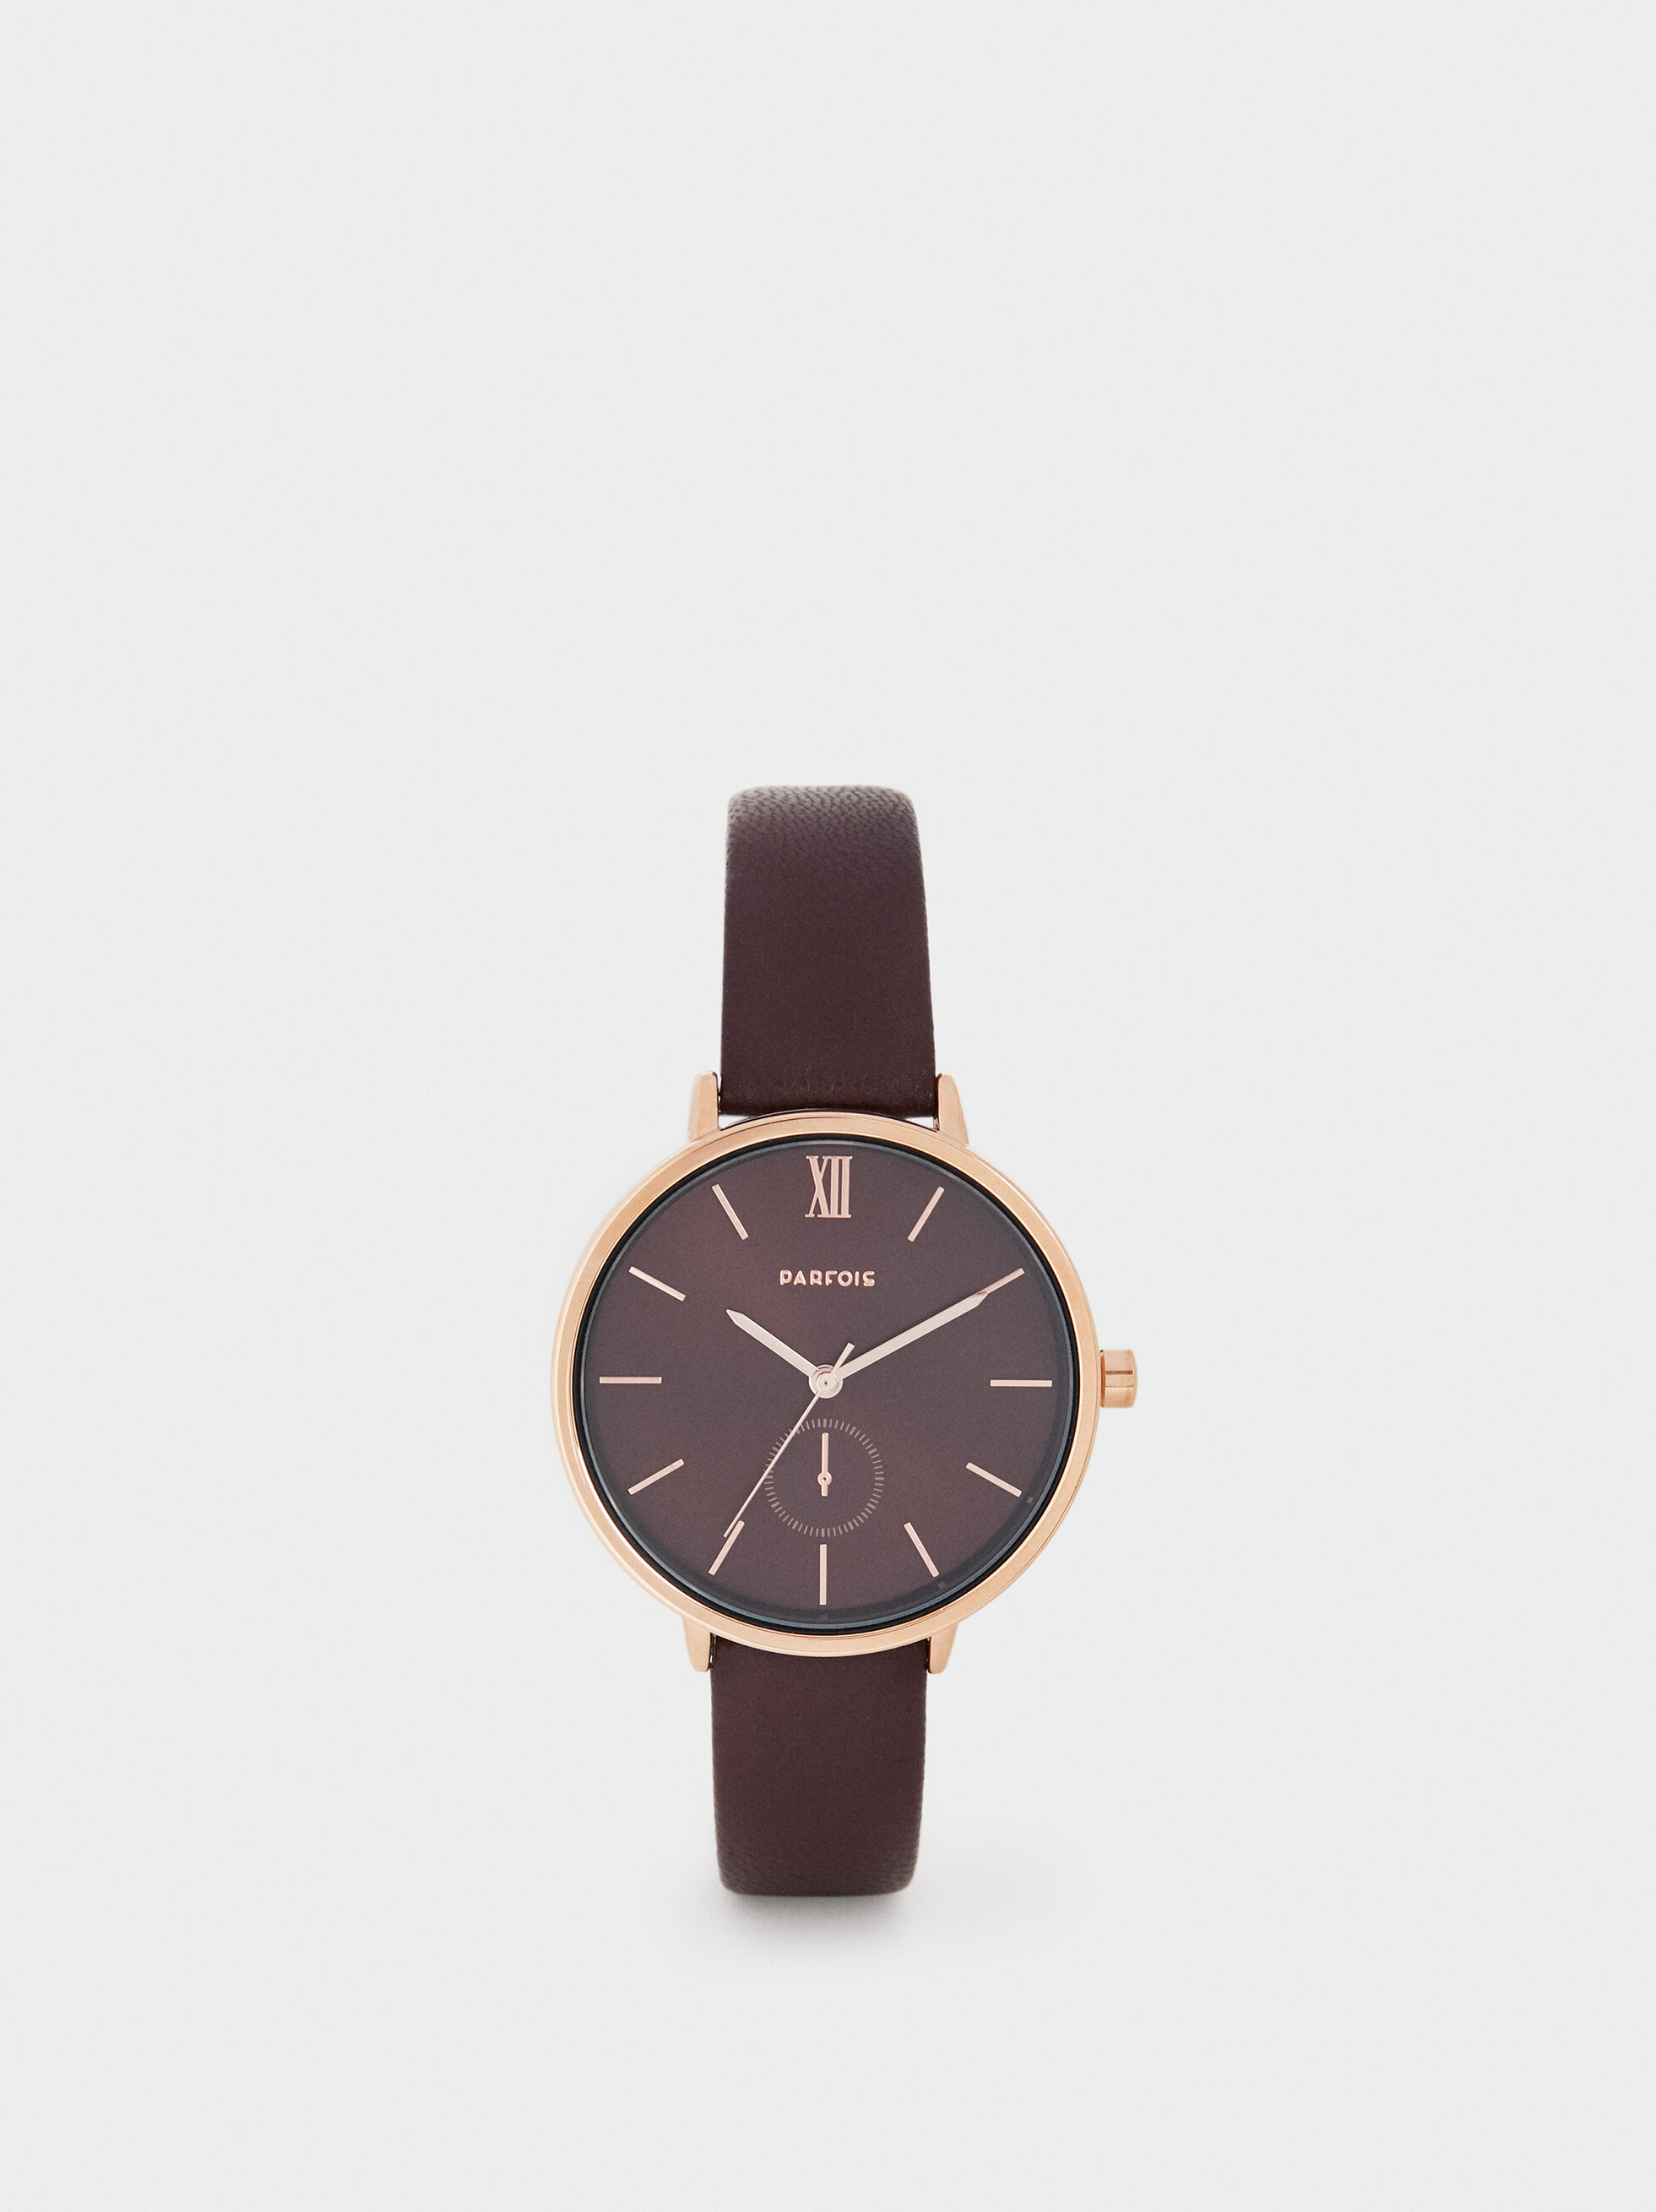 Watch With Burgundy Wristband And Dial, Brown, hi-res